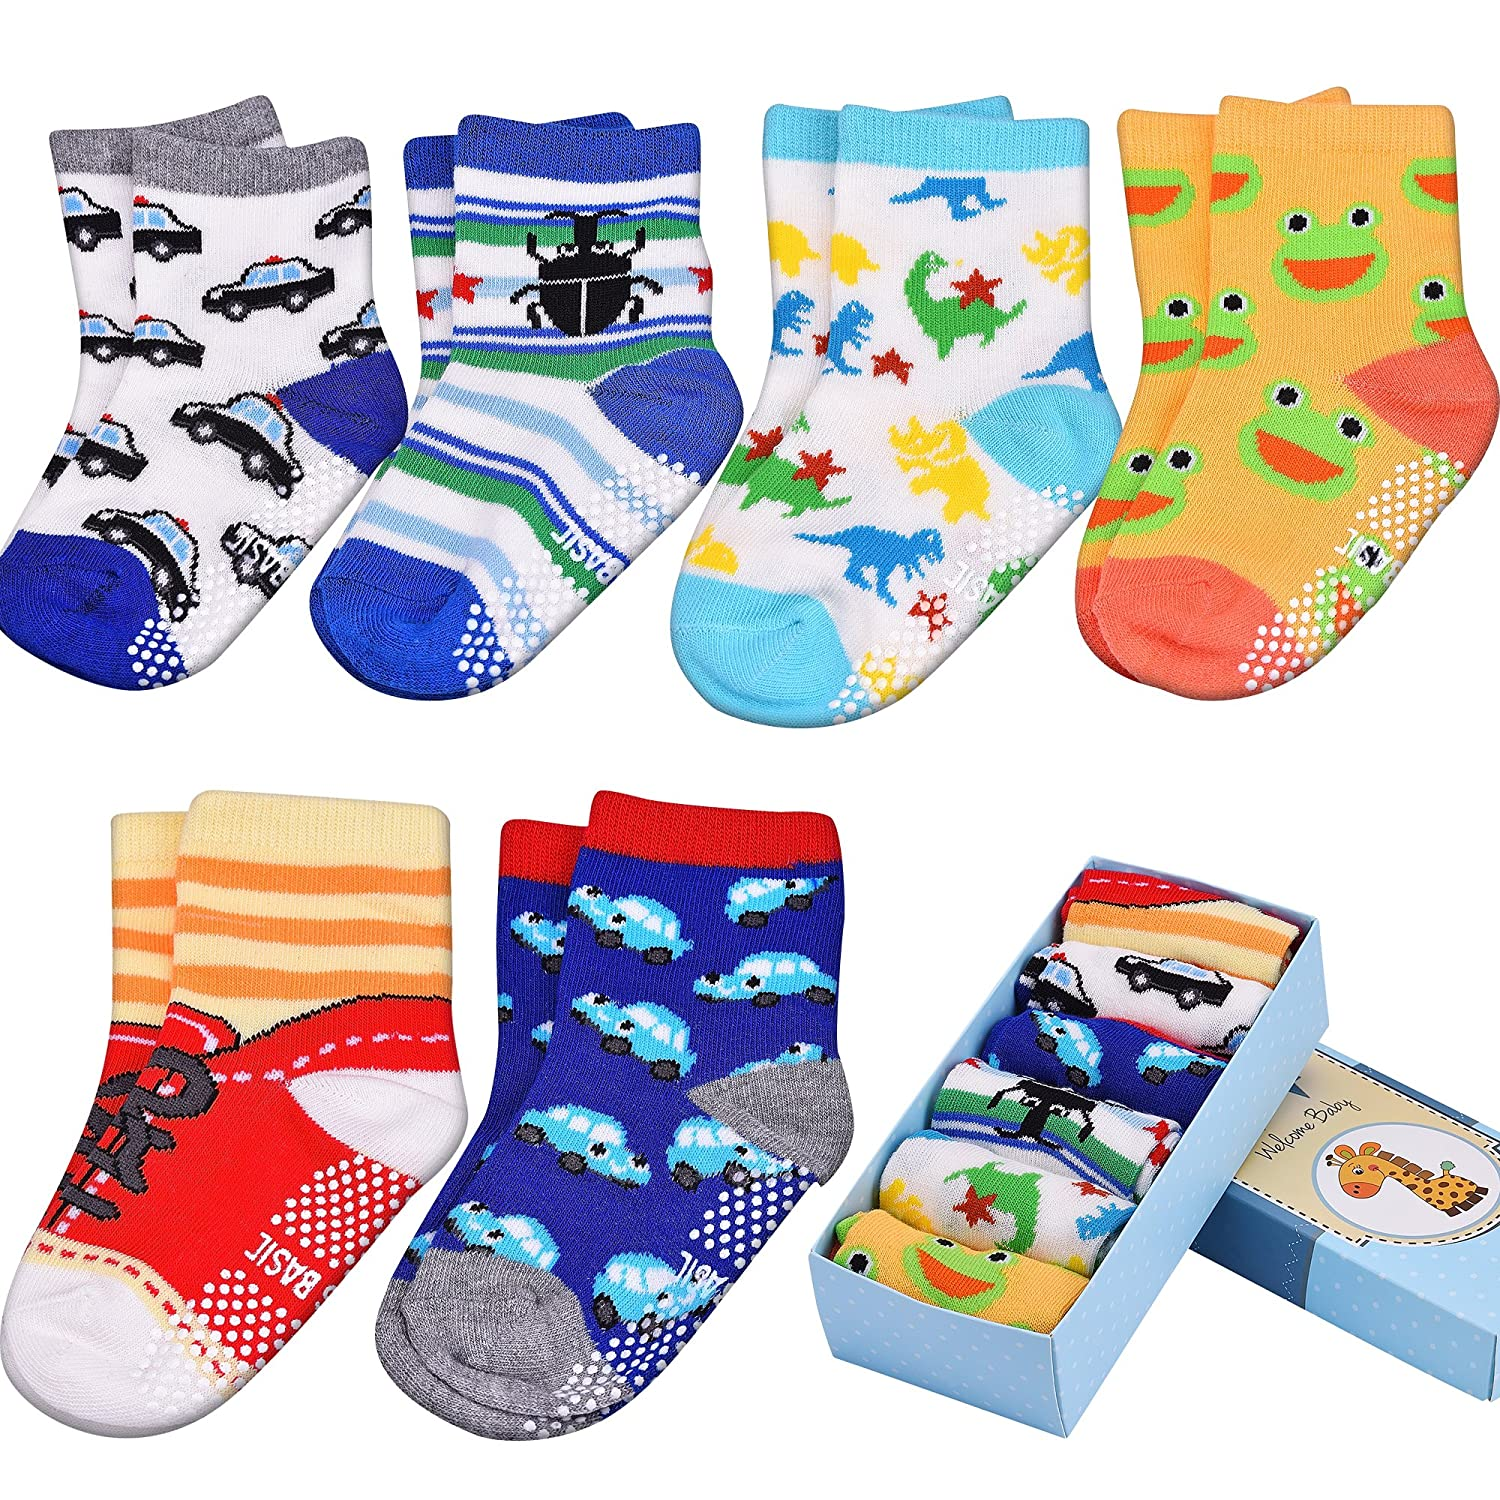 Toddler & Baby Socks, Non Slip, Contton Blended Strentchable 6-Pack boxed set for 12-36 Month Baby Girls and Baby Boys Newever